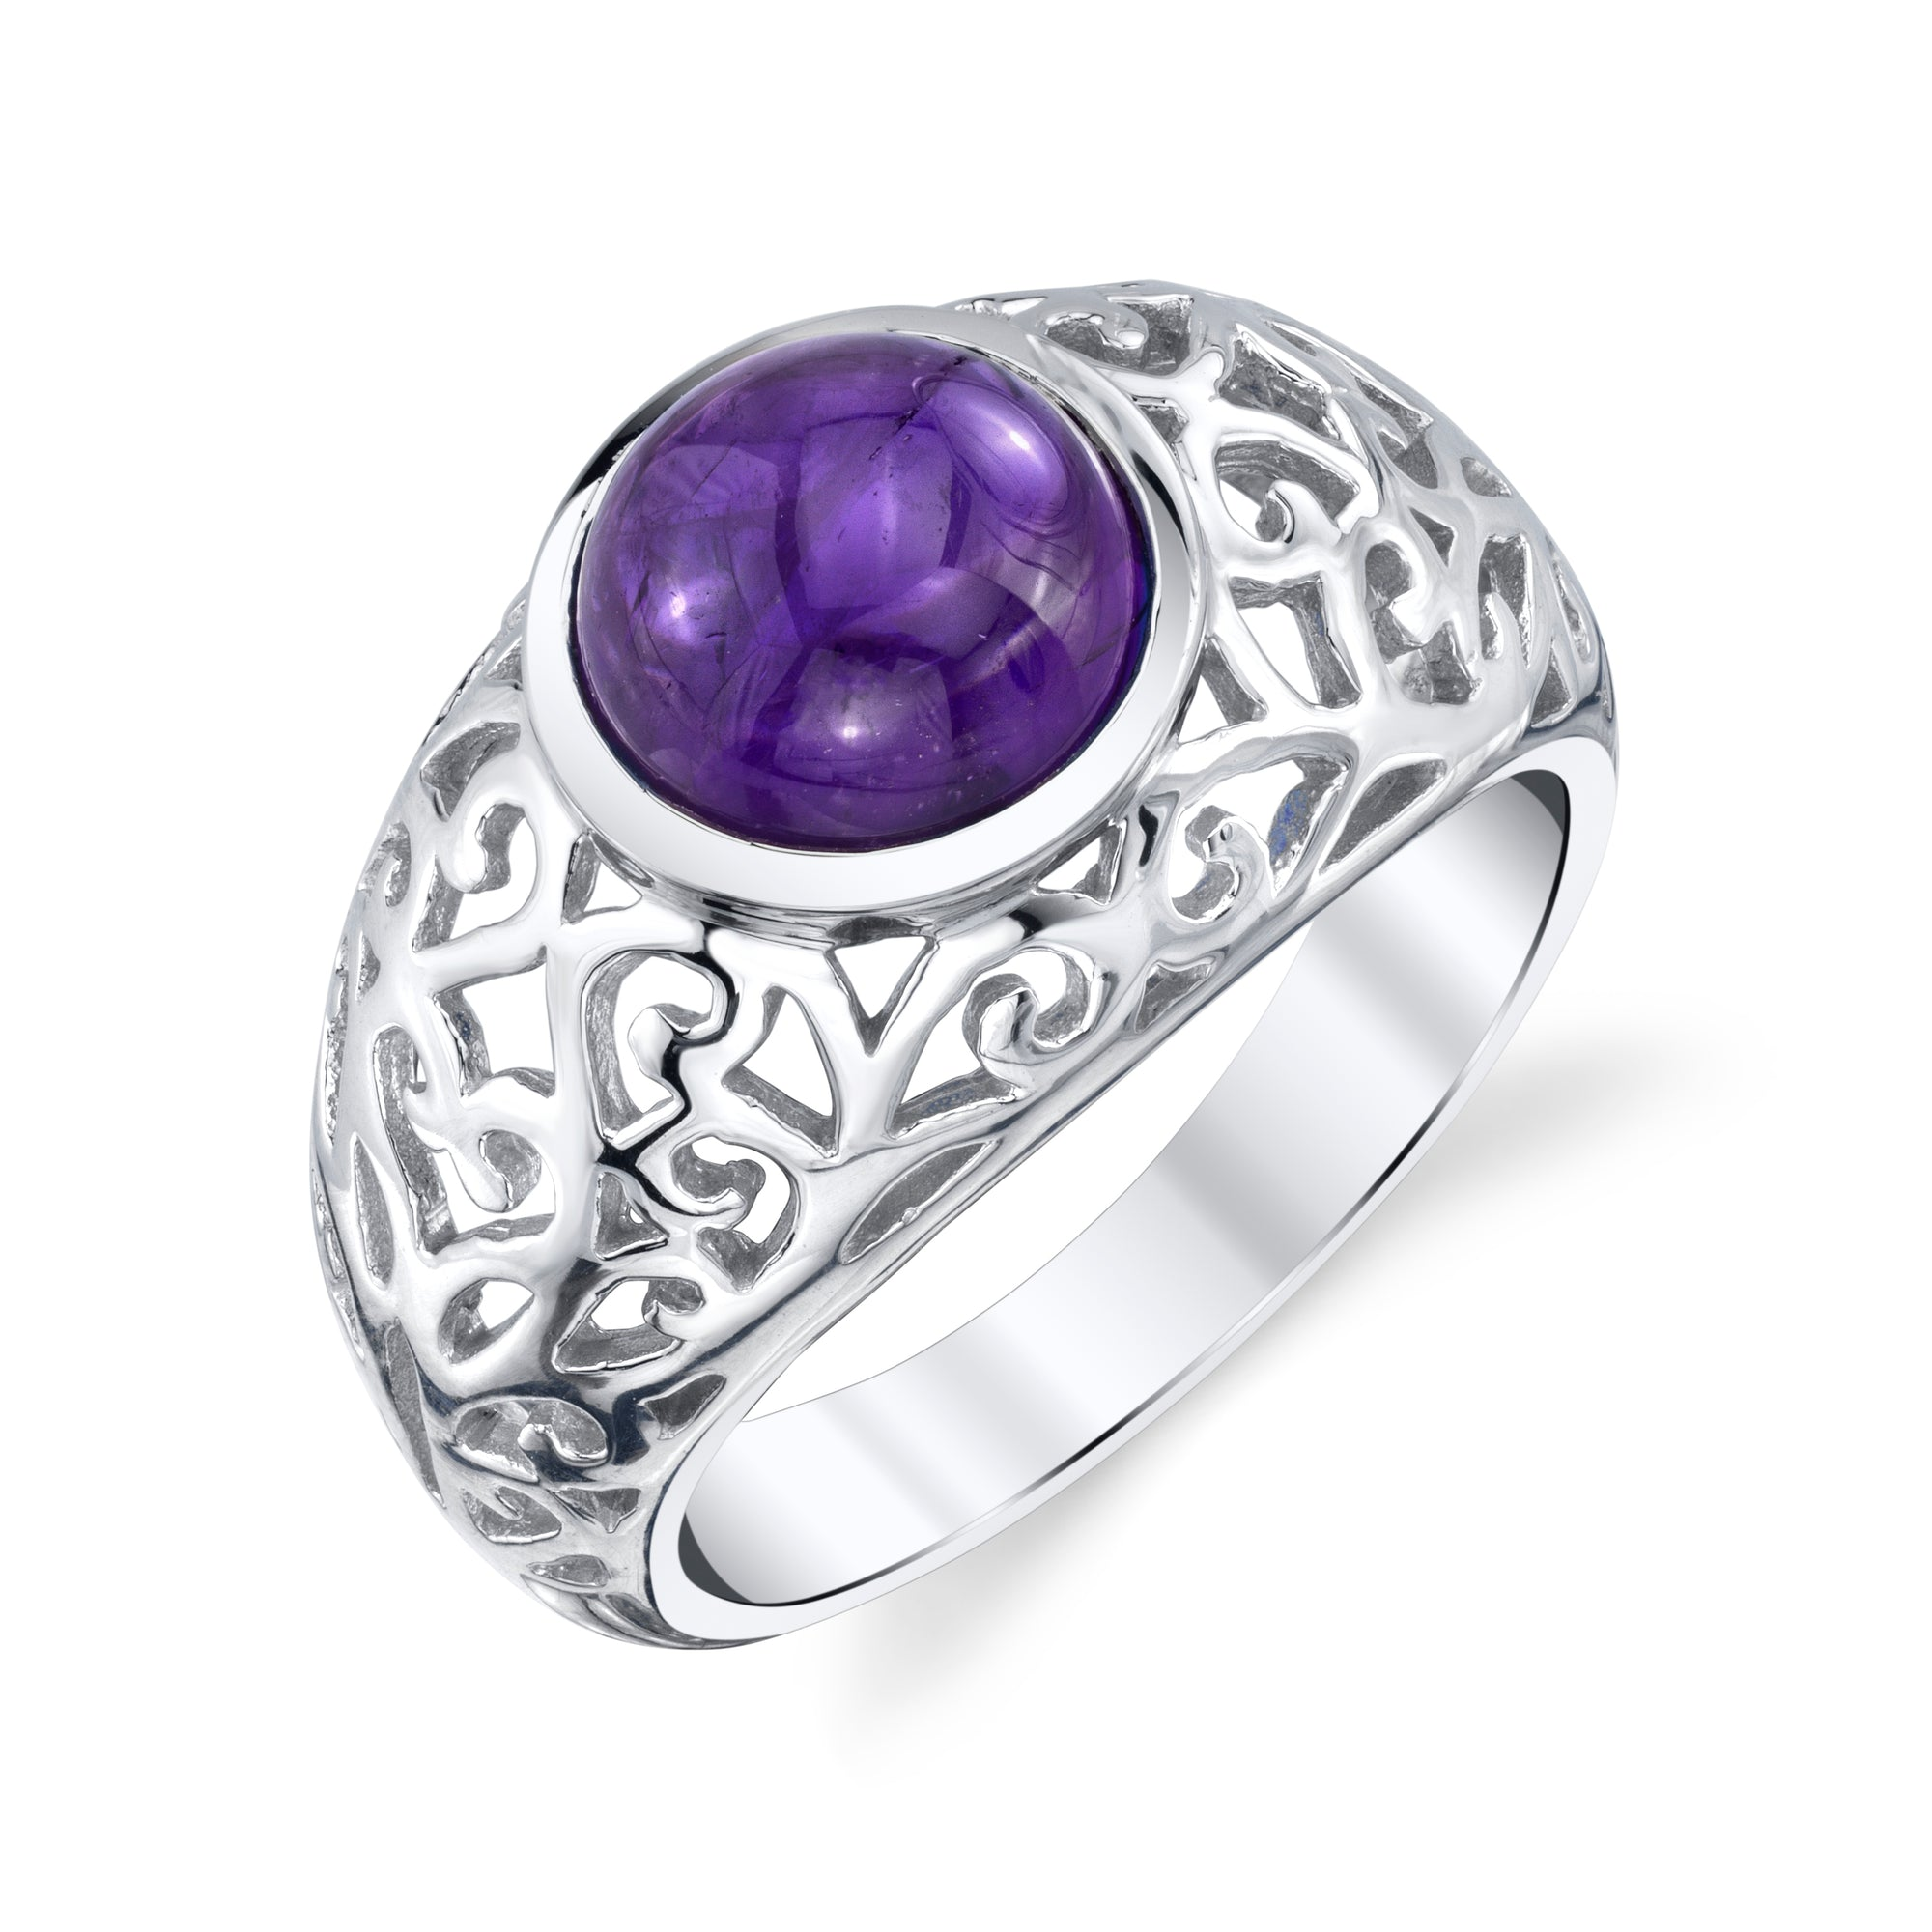 Filigree Men's Round Cabochon Ring